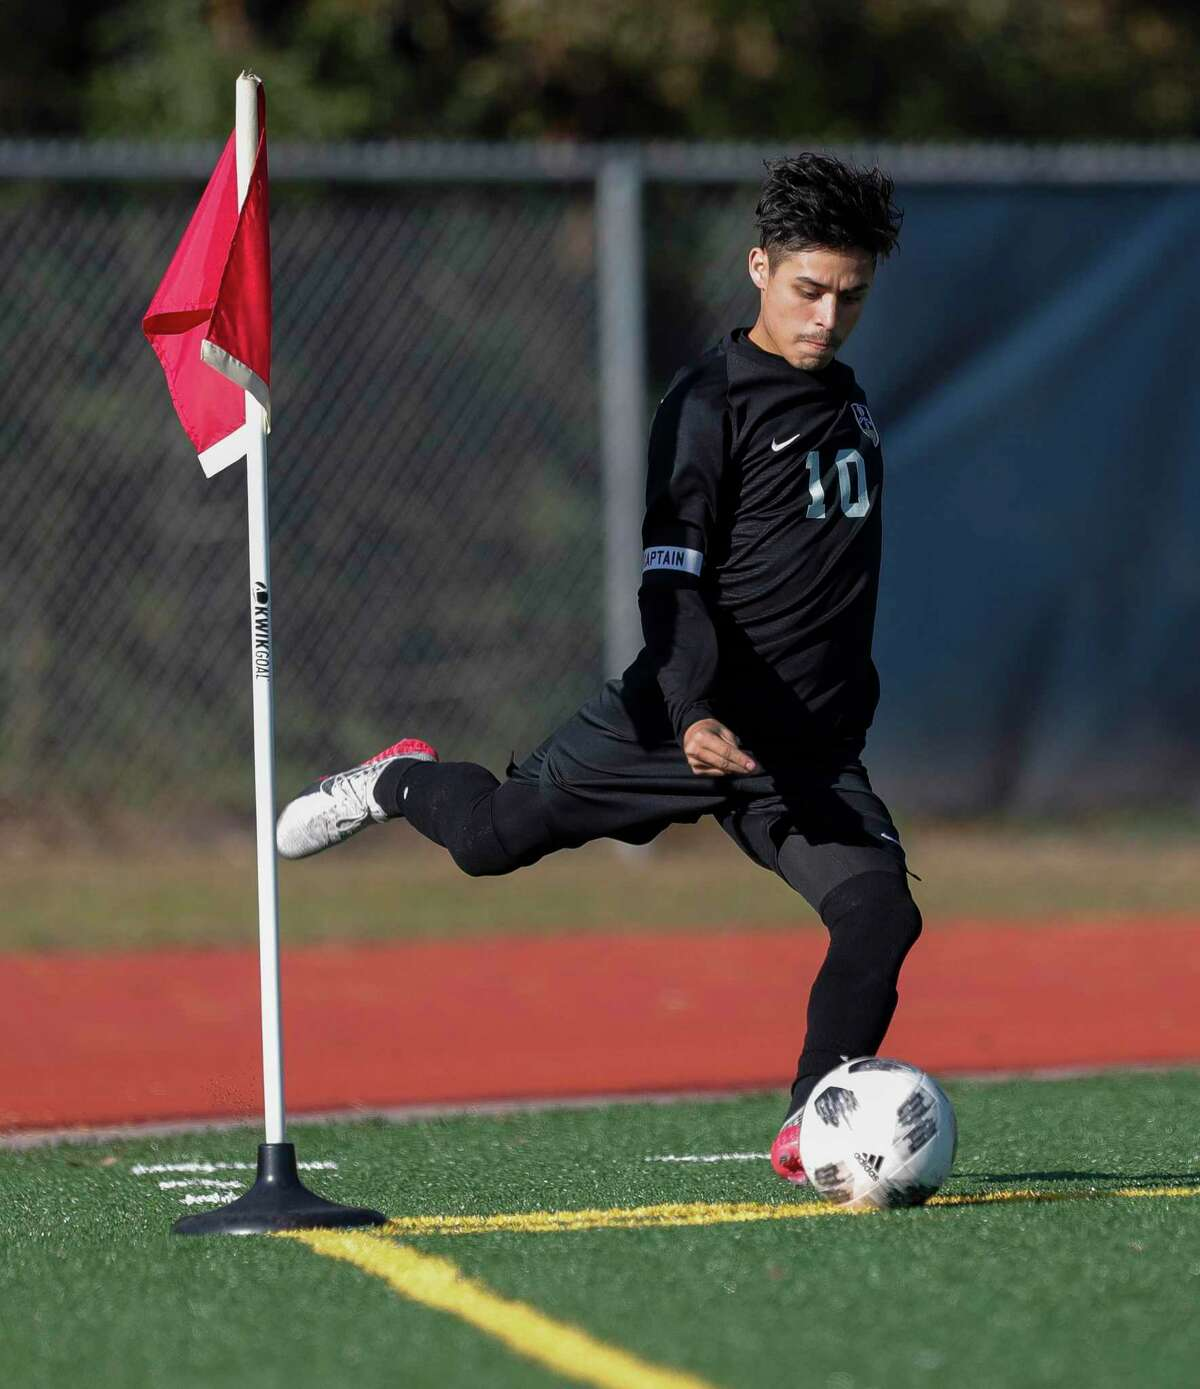 FILE PHOTO - Conroe's Danny Bonilla (10) takes a corner kick in the first period of a match during the Humble ISD soccer tournament at Atascocita High School, Saturday, Jan. 11, 2020, in Atascocita.